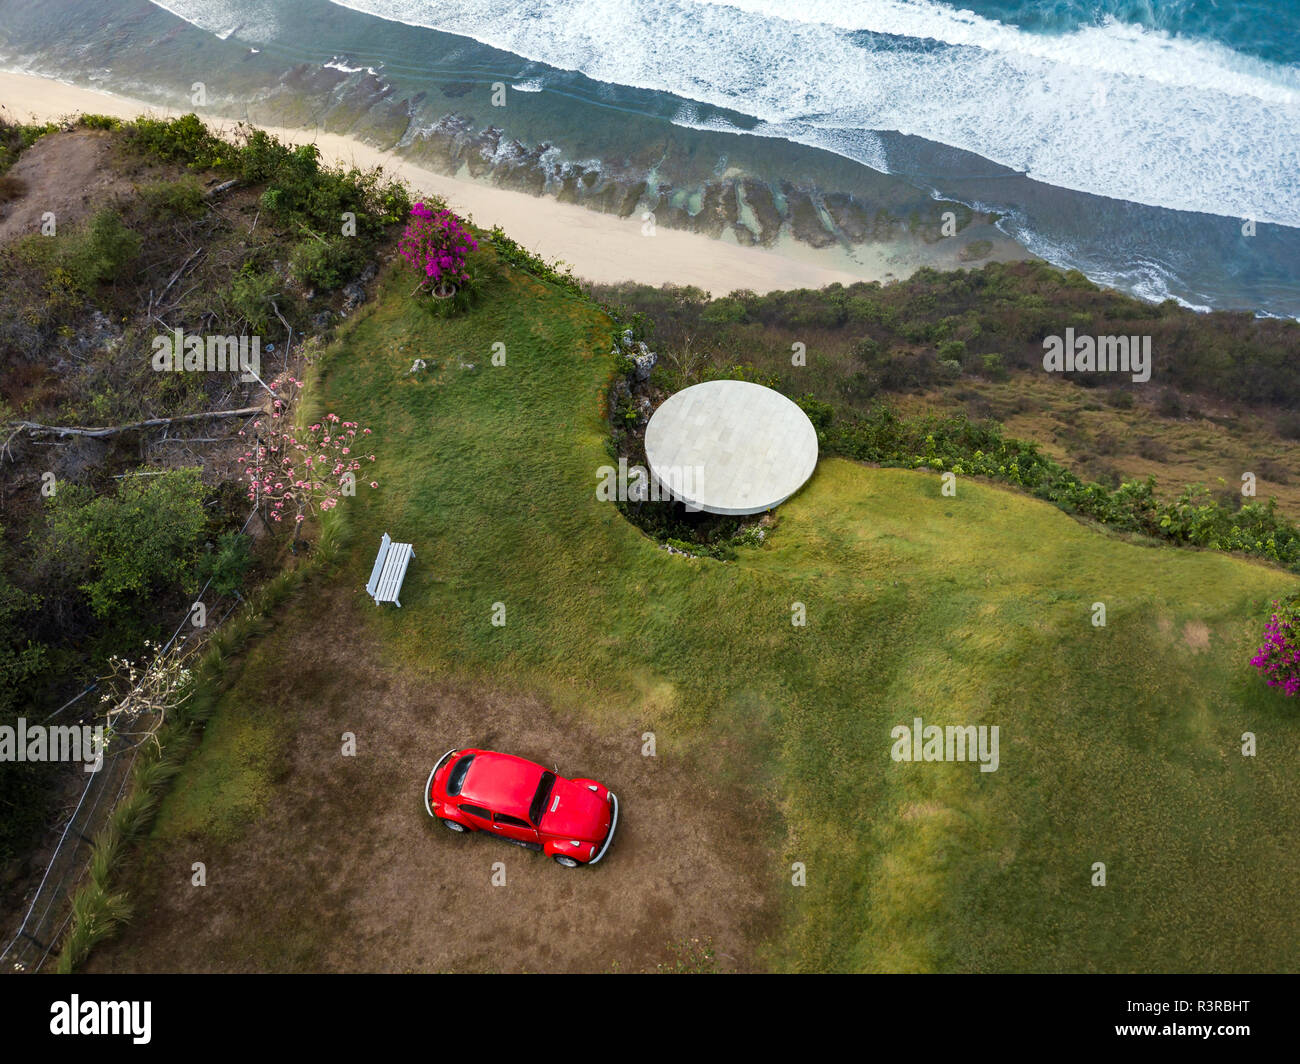 Indonesia, Bali, Aerial view of Nyang Nyang beach, VW beetle and observation point - Stock Image